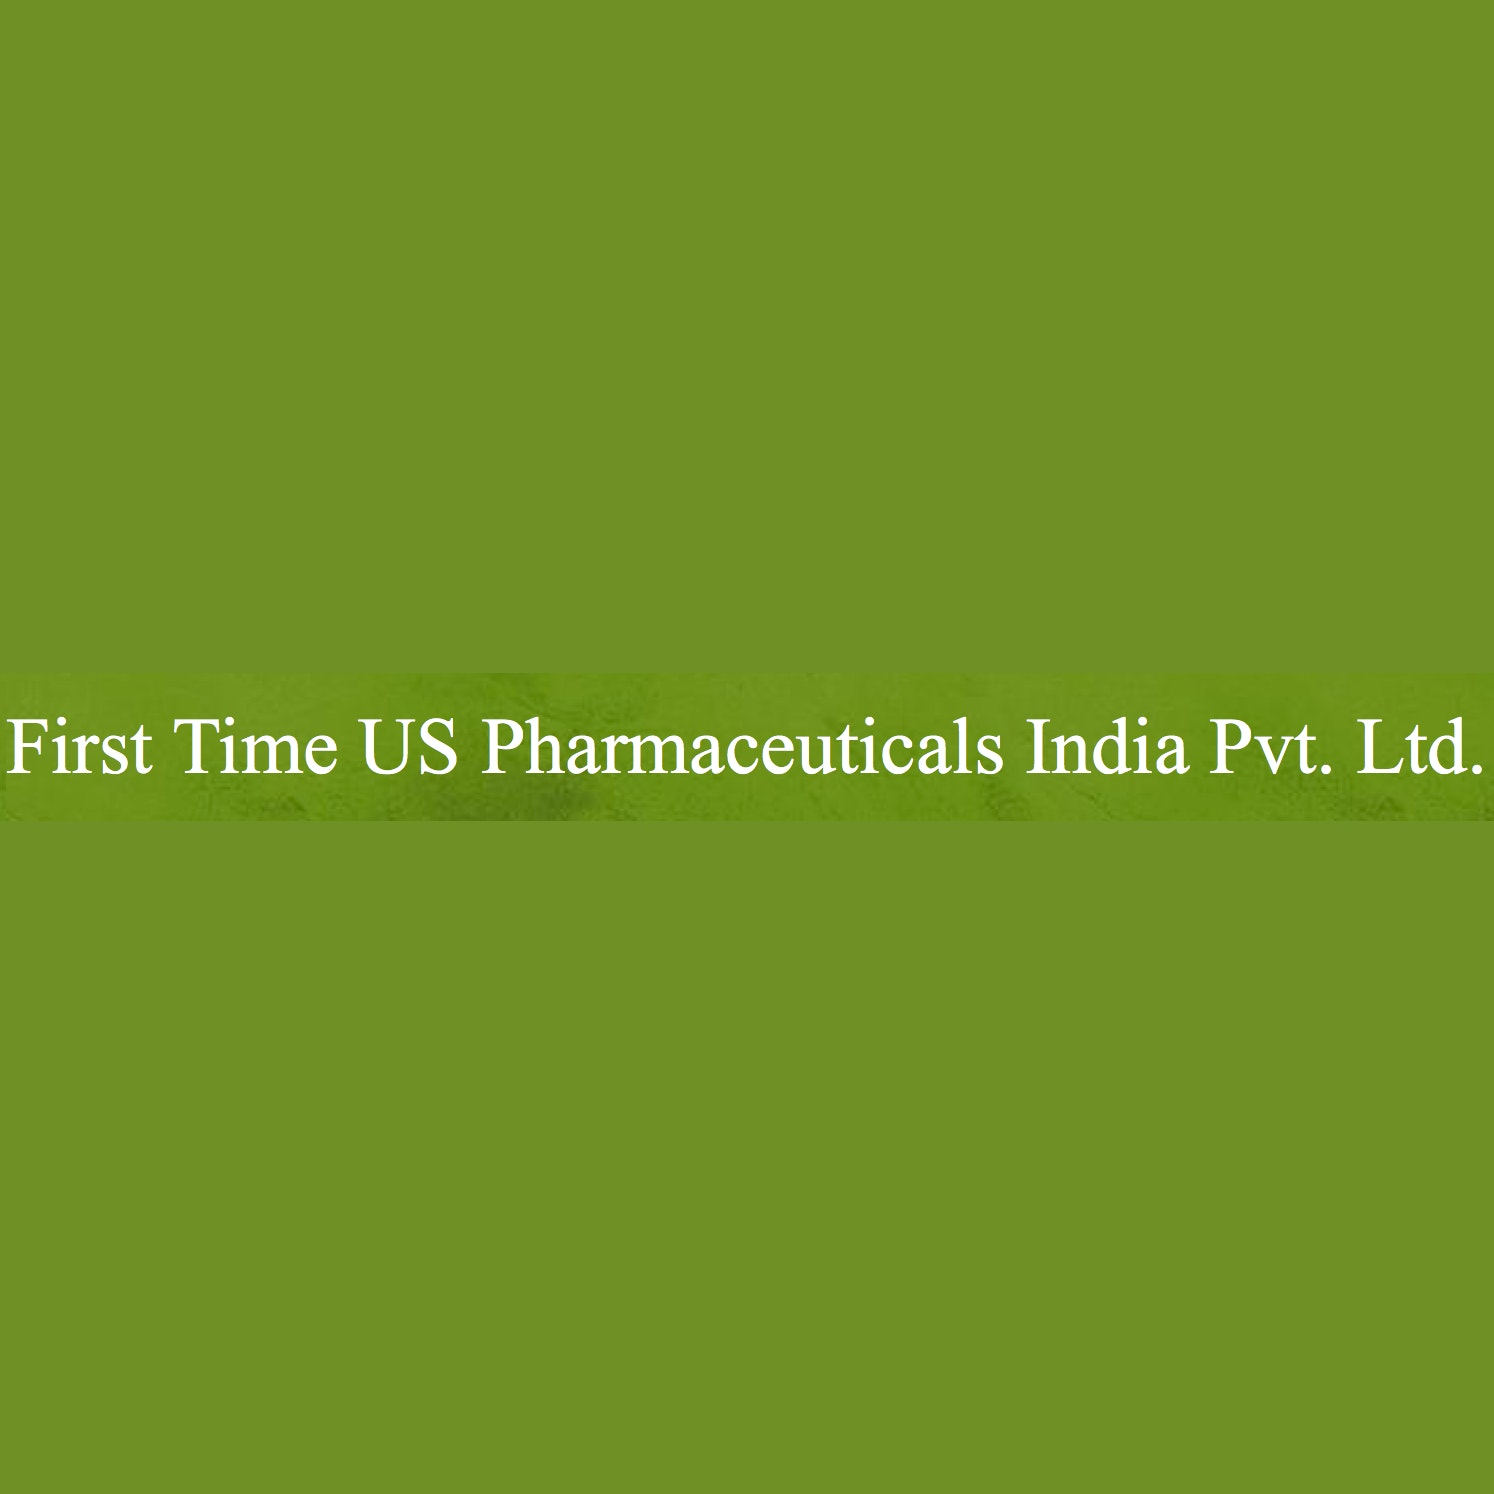 First Time US Pharmaceuticals India Lab / Facility Logo